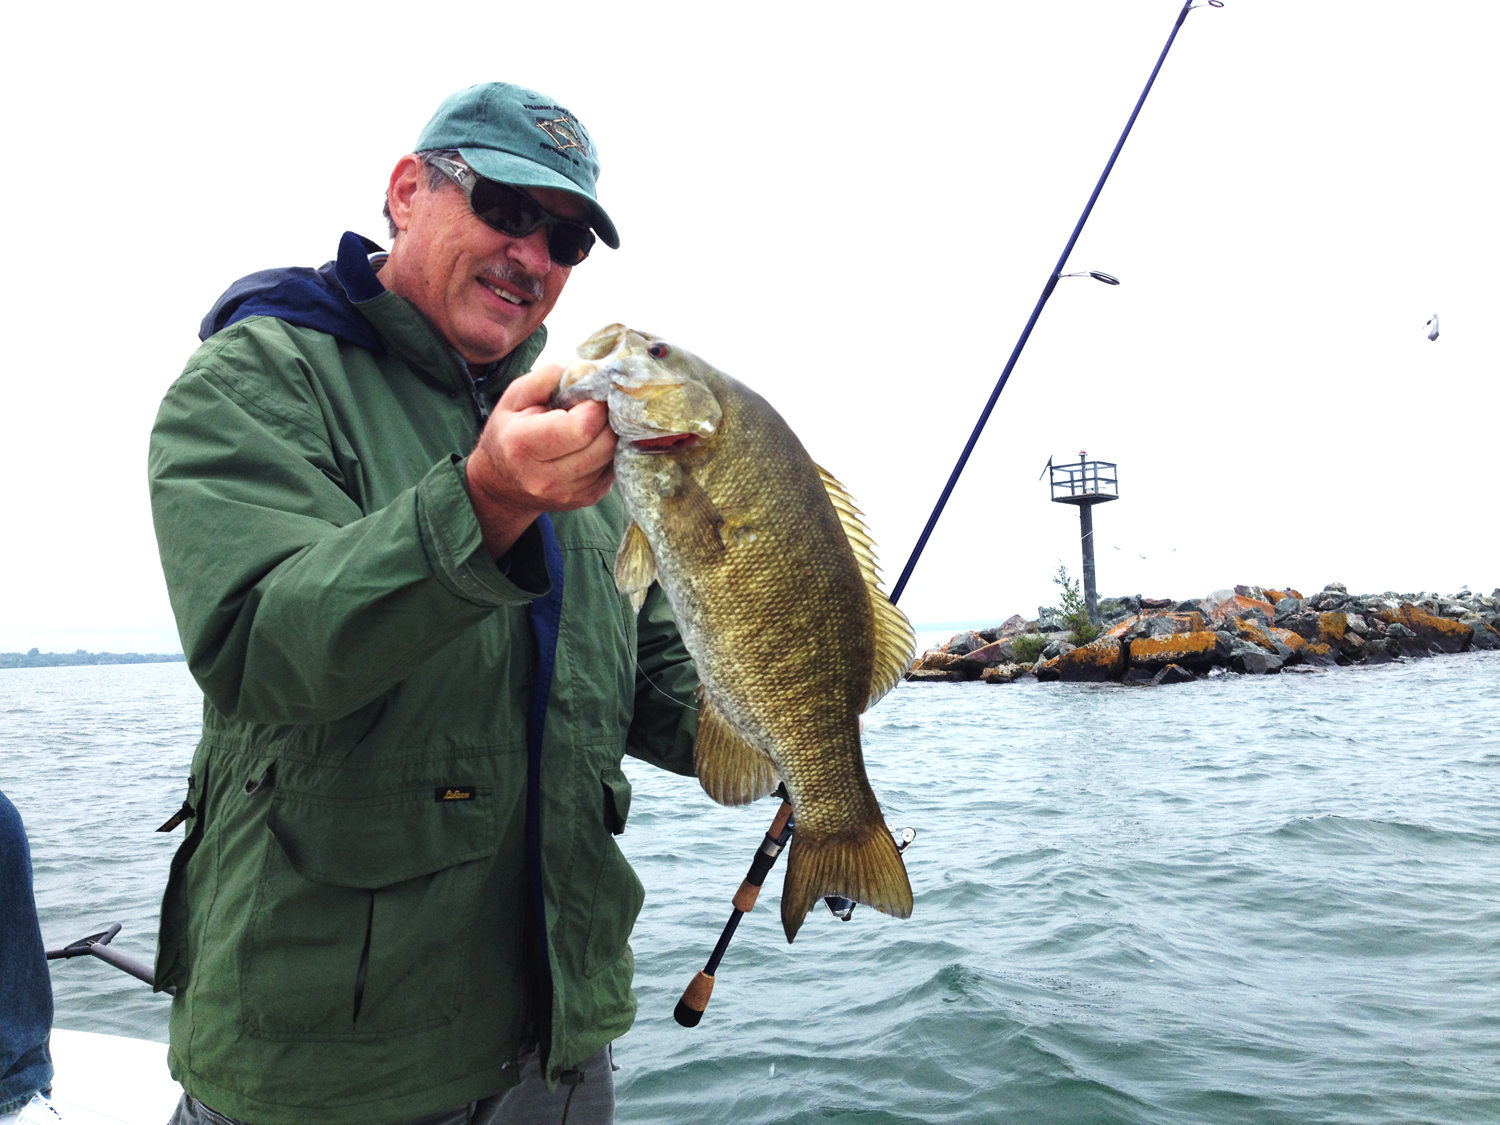 Wade Bourne of Clarksville, Tennessee, host of Wired2fish Radio and co-host of Ducks Unlimited Television had a great time on the waters of Chequamegon Bay.